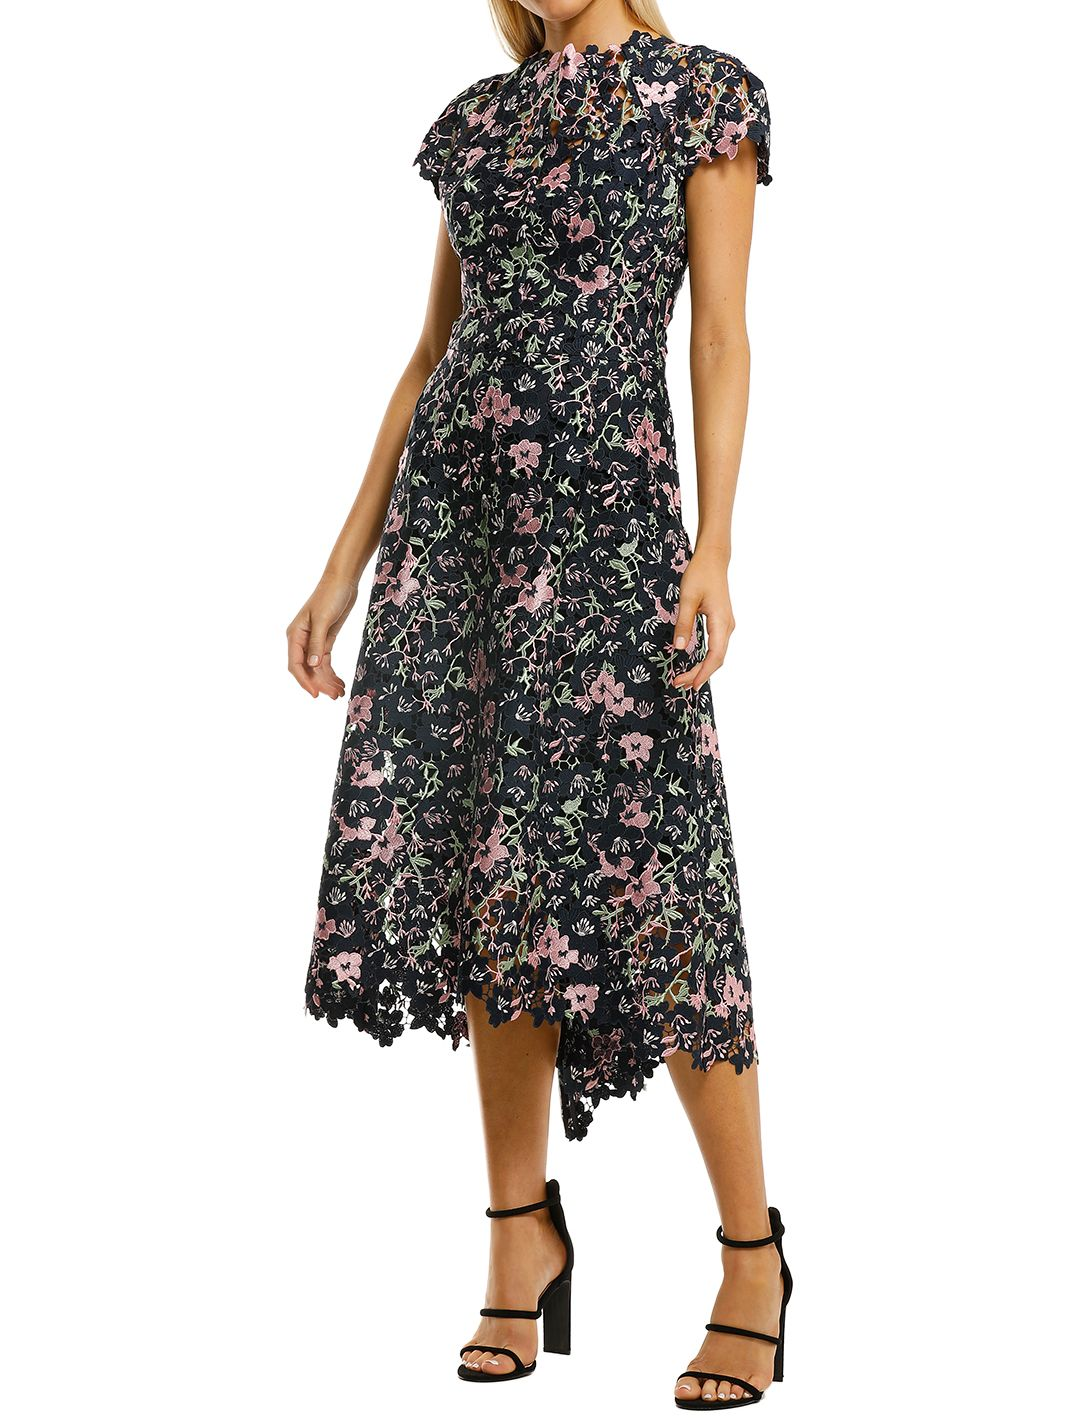 Moss-and-Spy-Birdy-Dress-Floral-Front